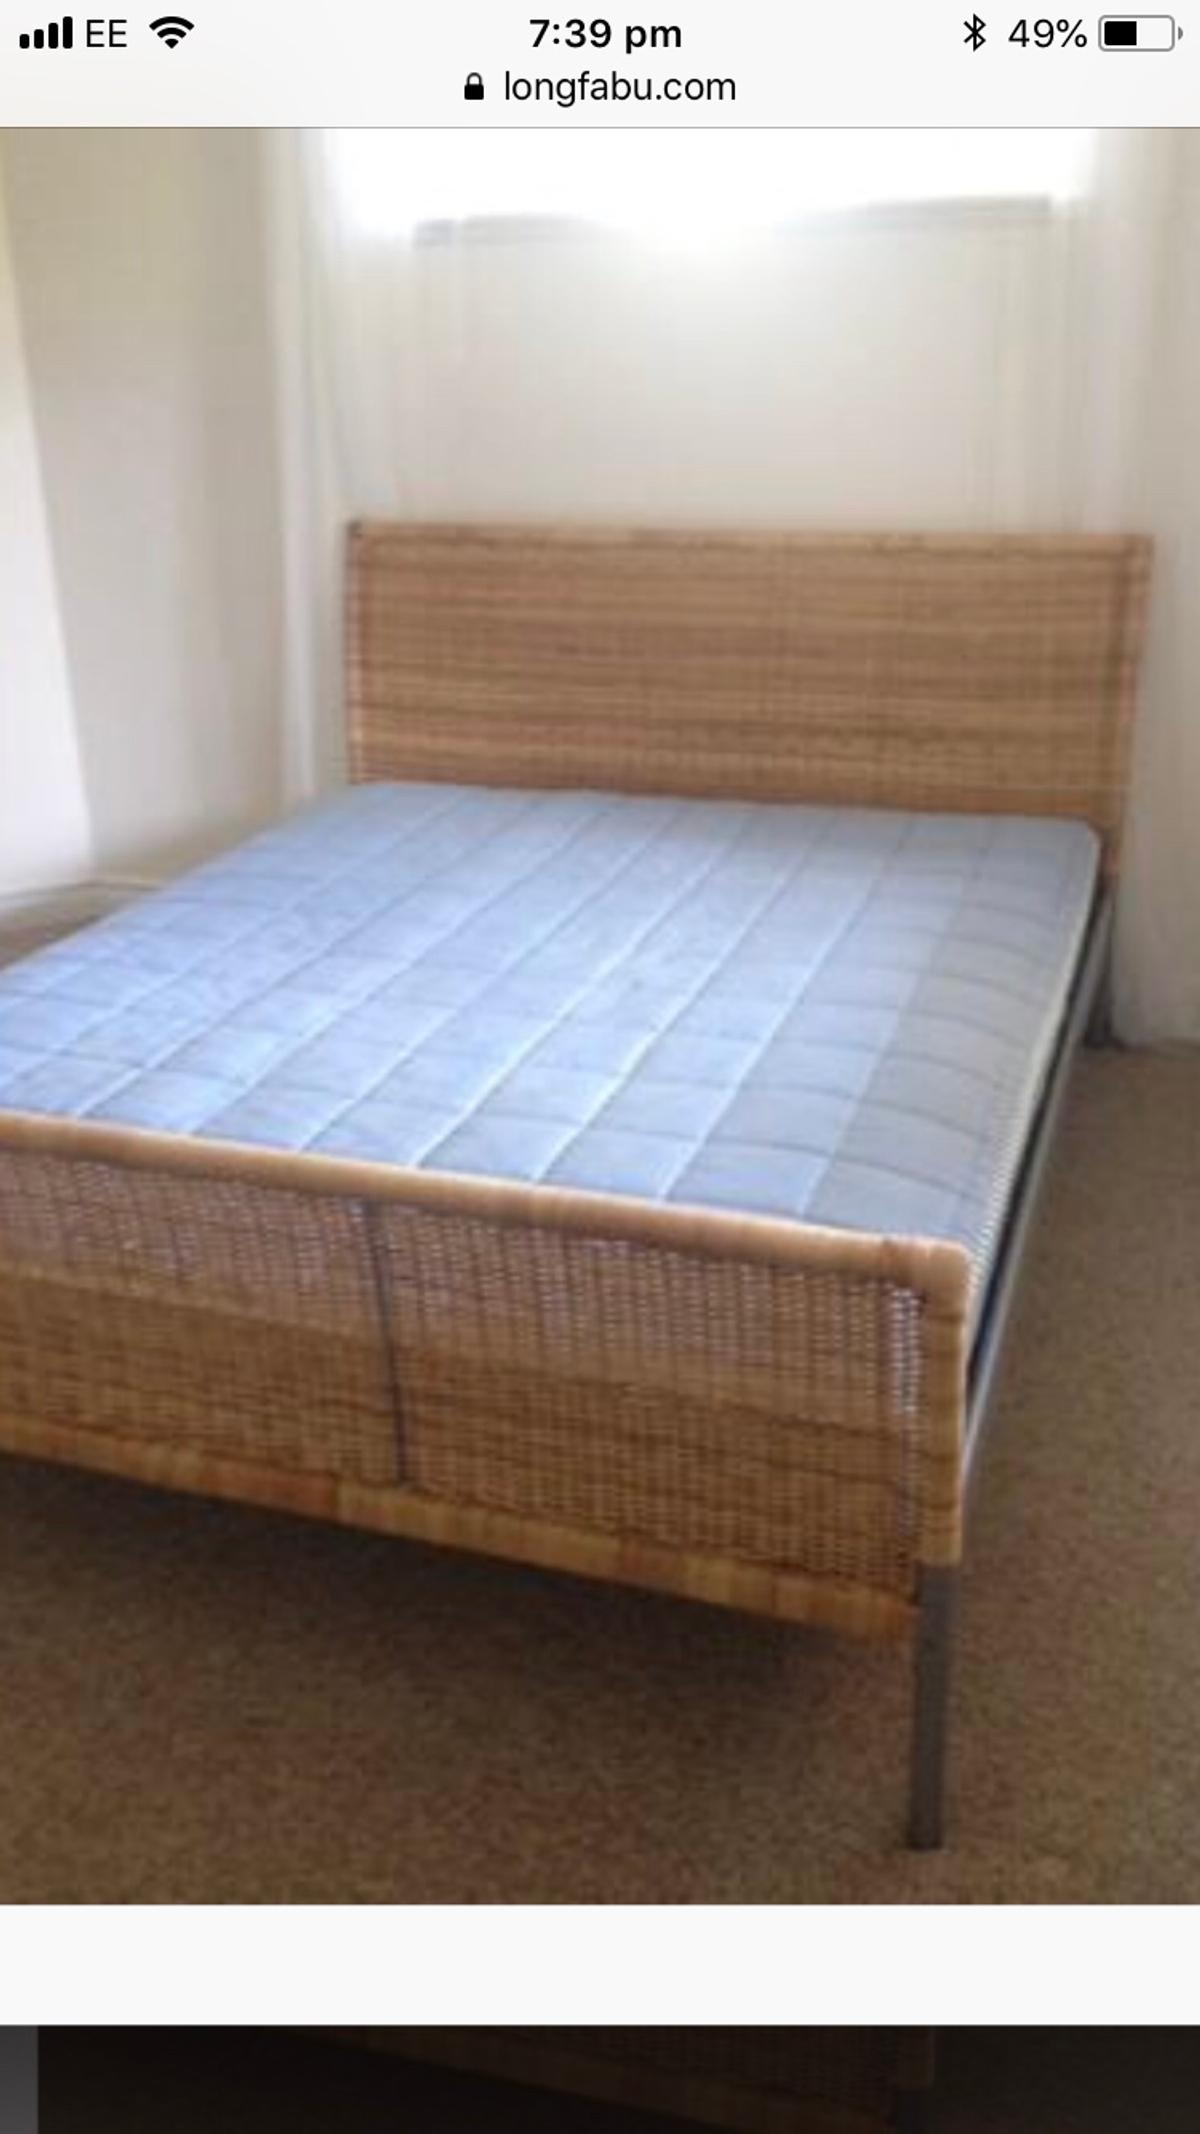 Ikea Rattan Sleigh Bed King Size In Ch48 Wirral For 50 00 For Sale Shpock